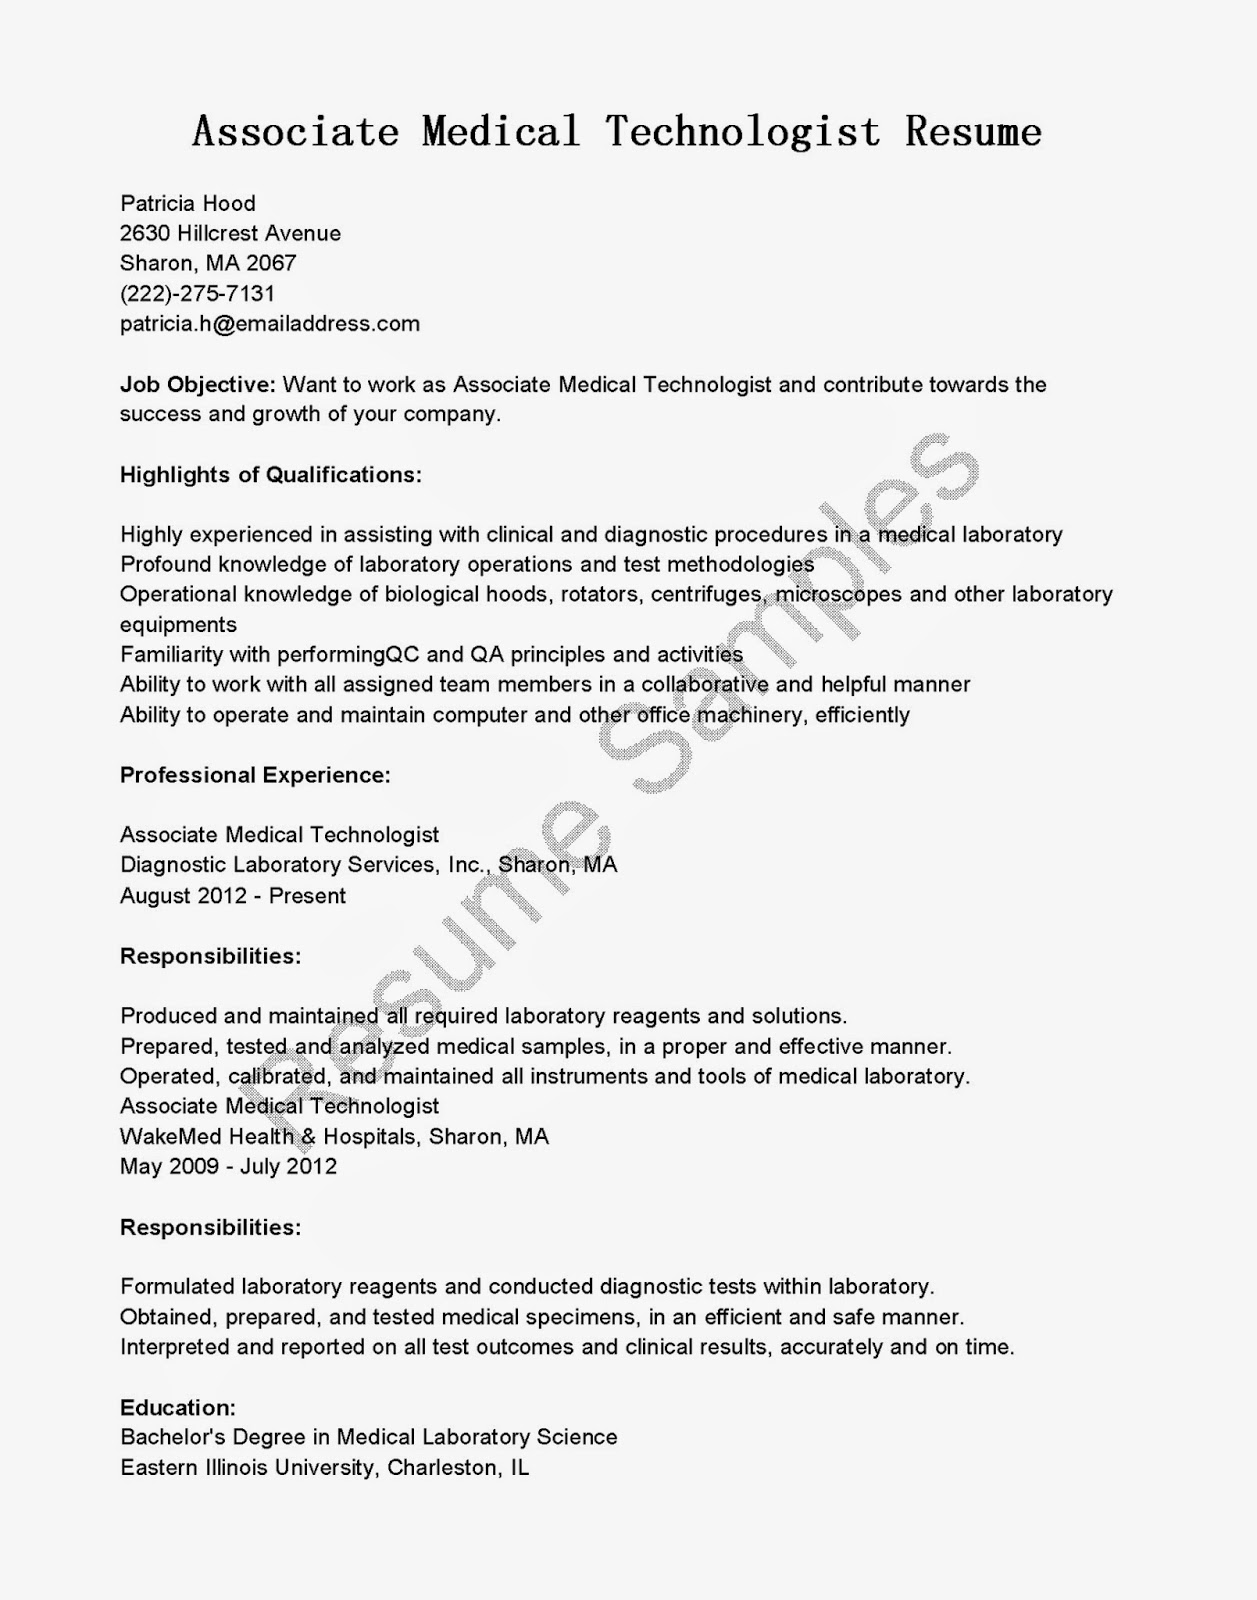 Clinical Resume Examples Selling Essays Online A Is For Academics